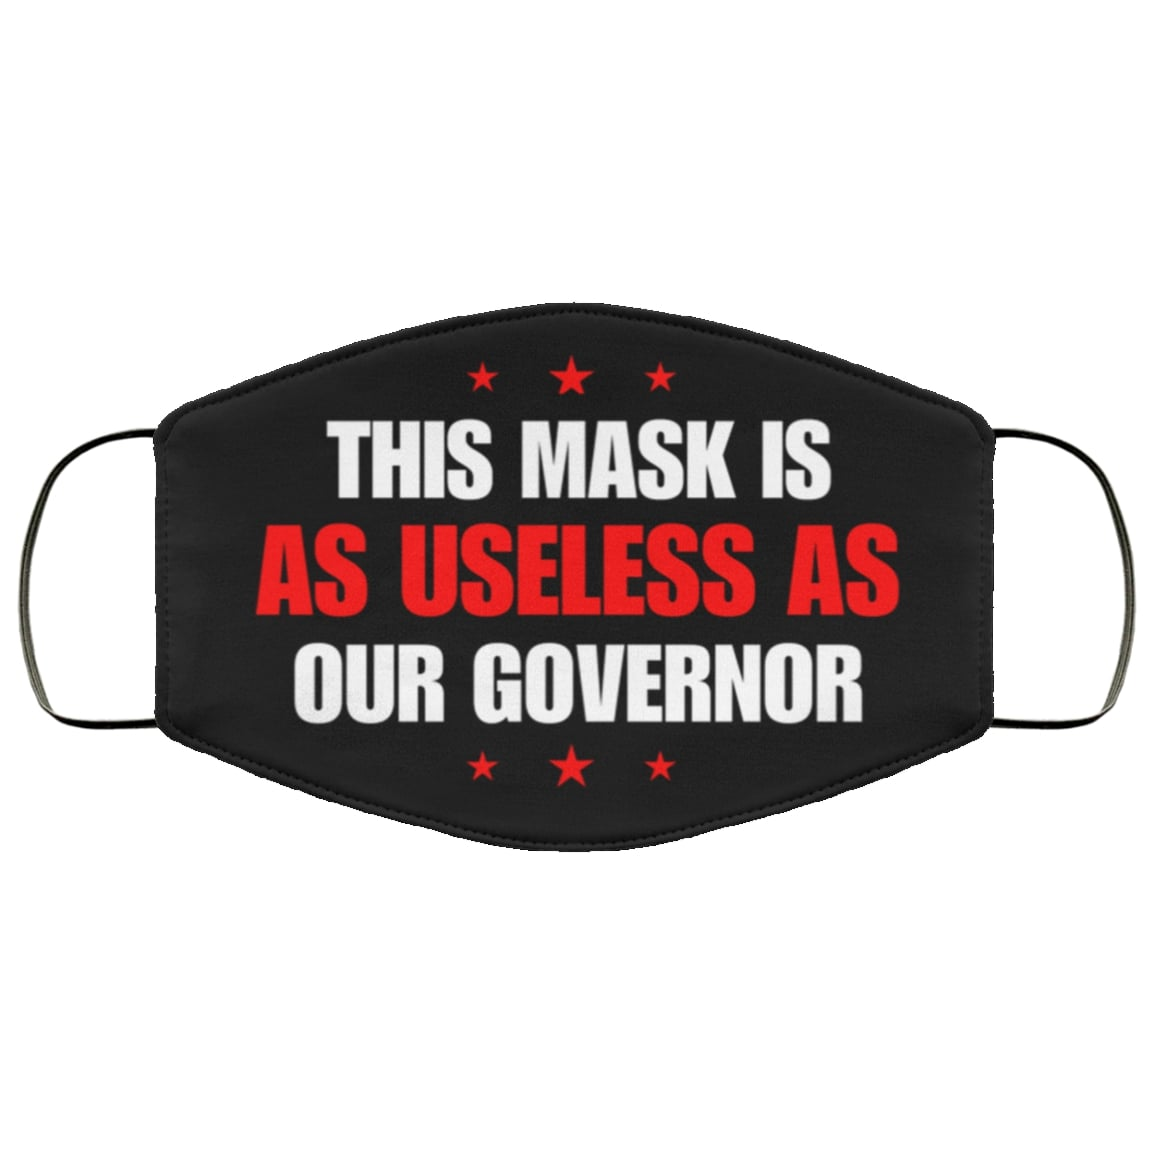 This mask is as useless as our governor full over printed face mask 4